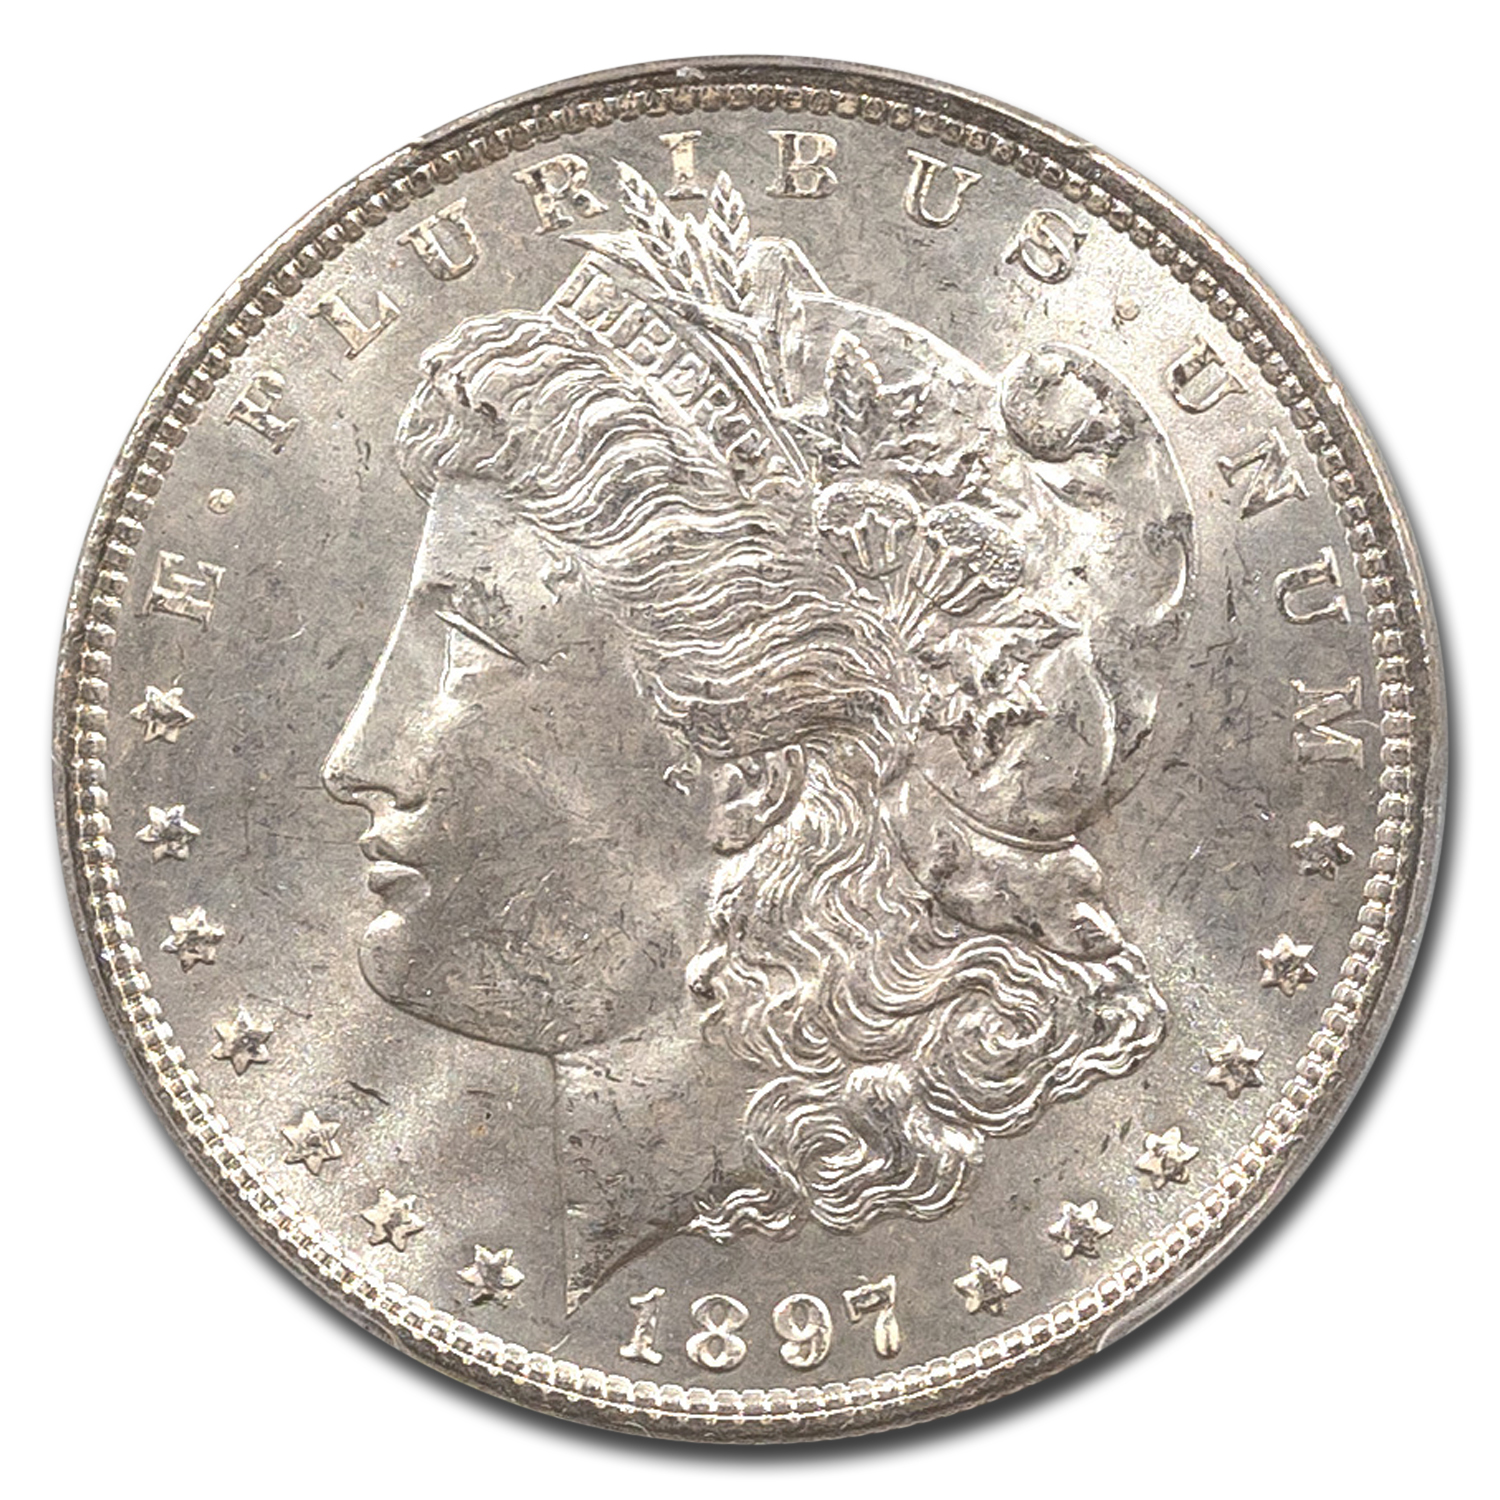 1897 Morgan Dollar - MS-64 PCGS